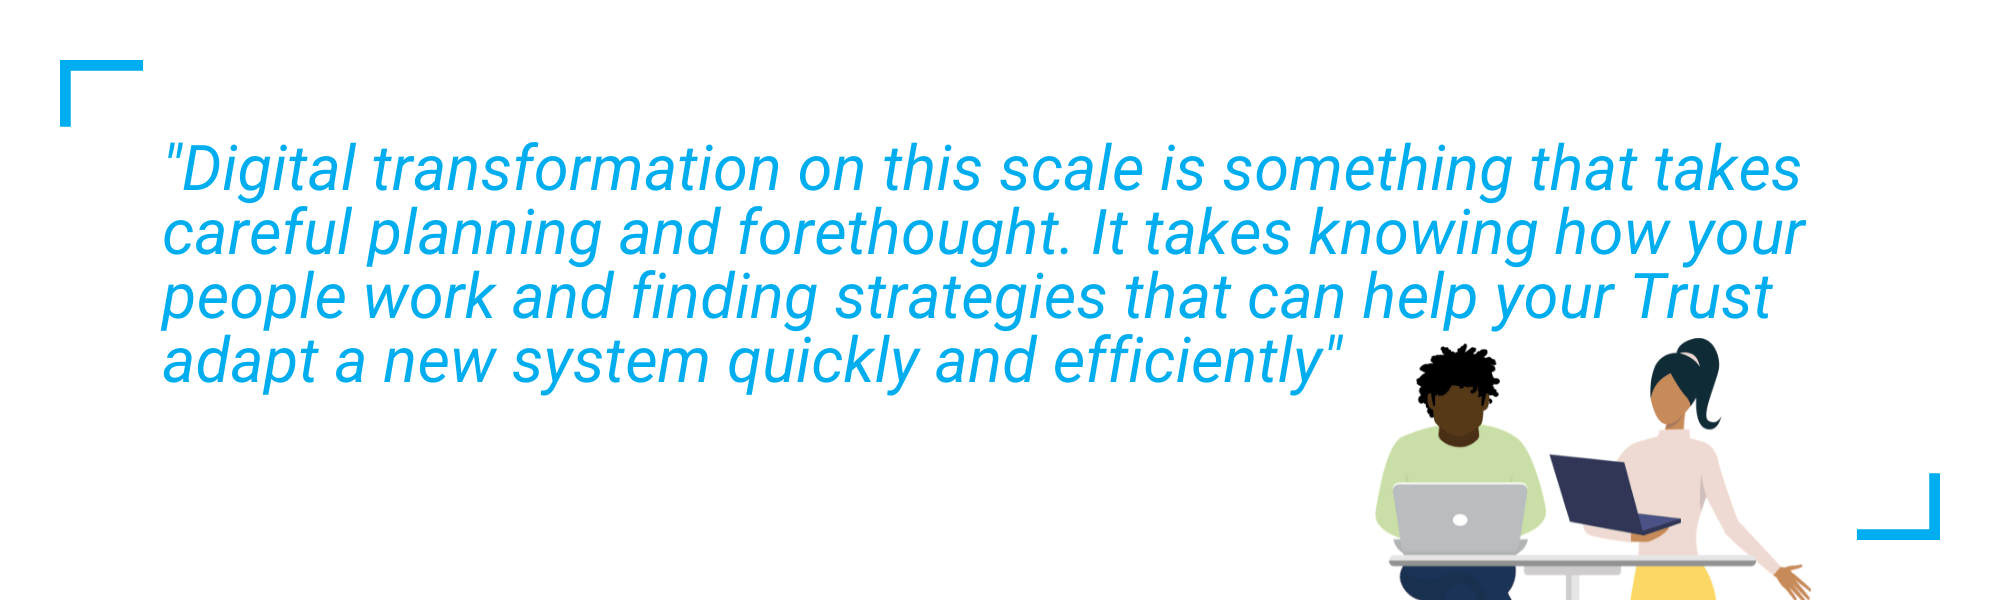 A quote saying digital transformation takes careful planning and forethought.